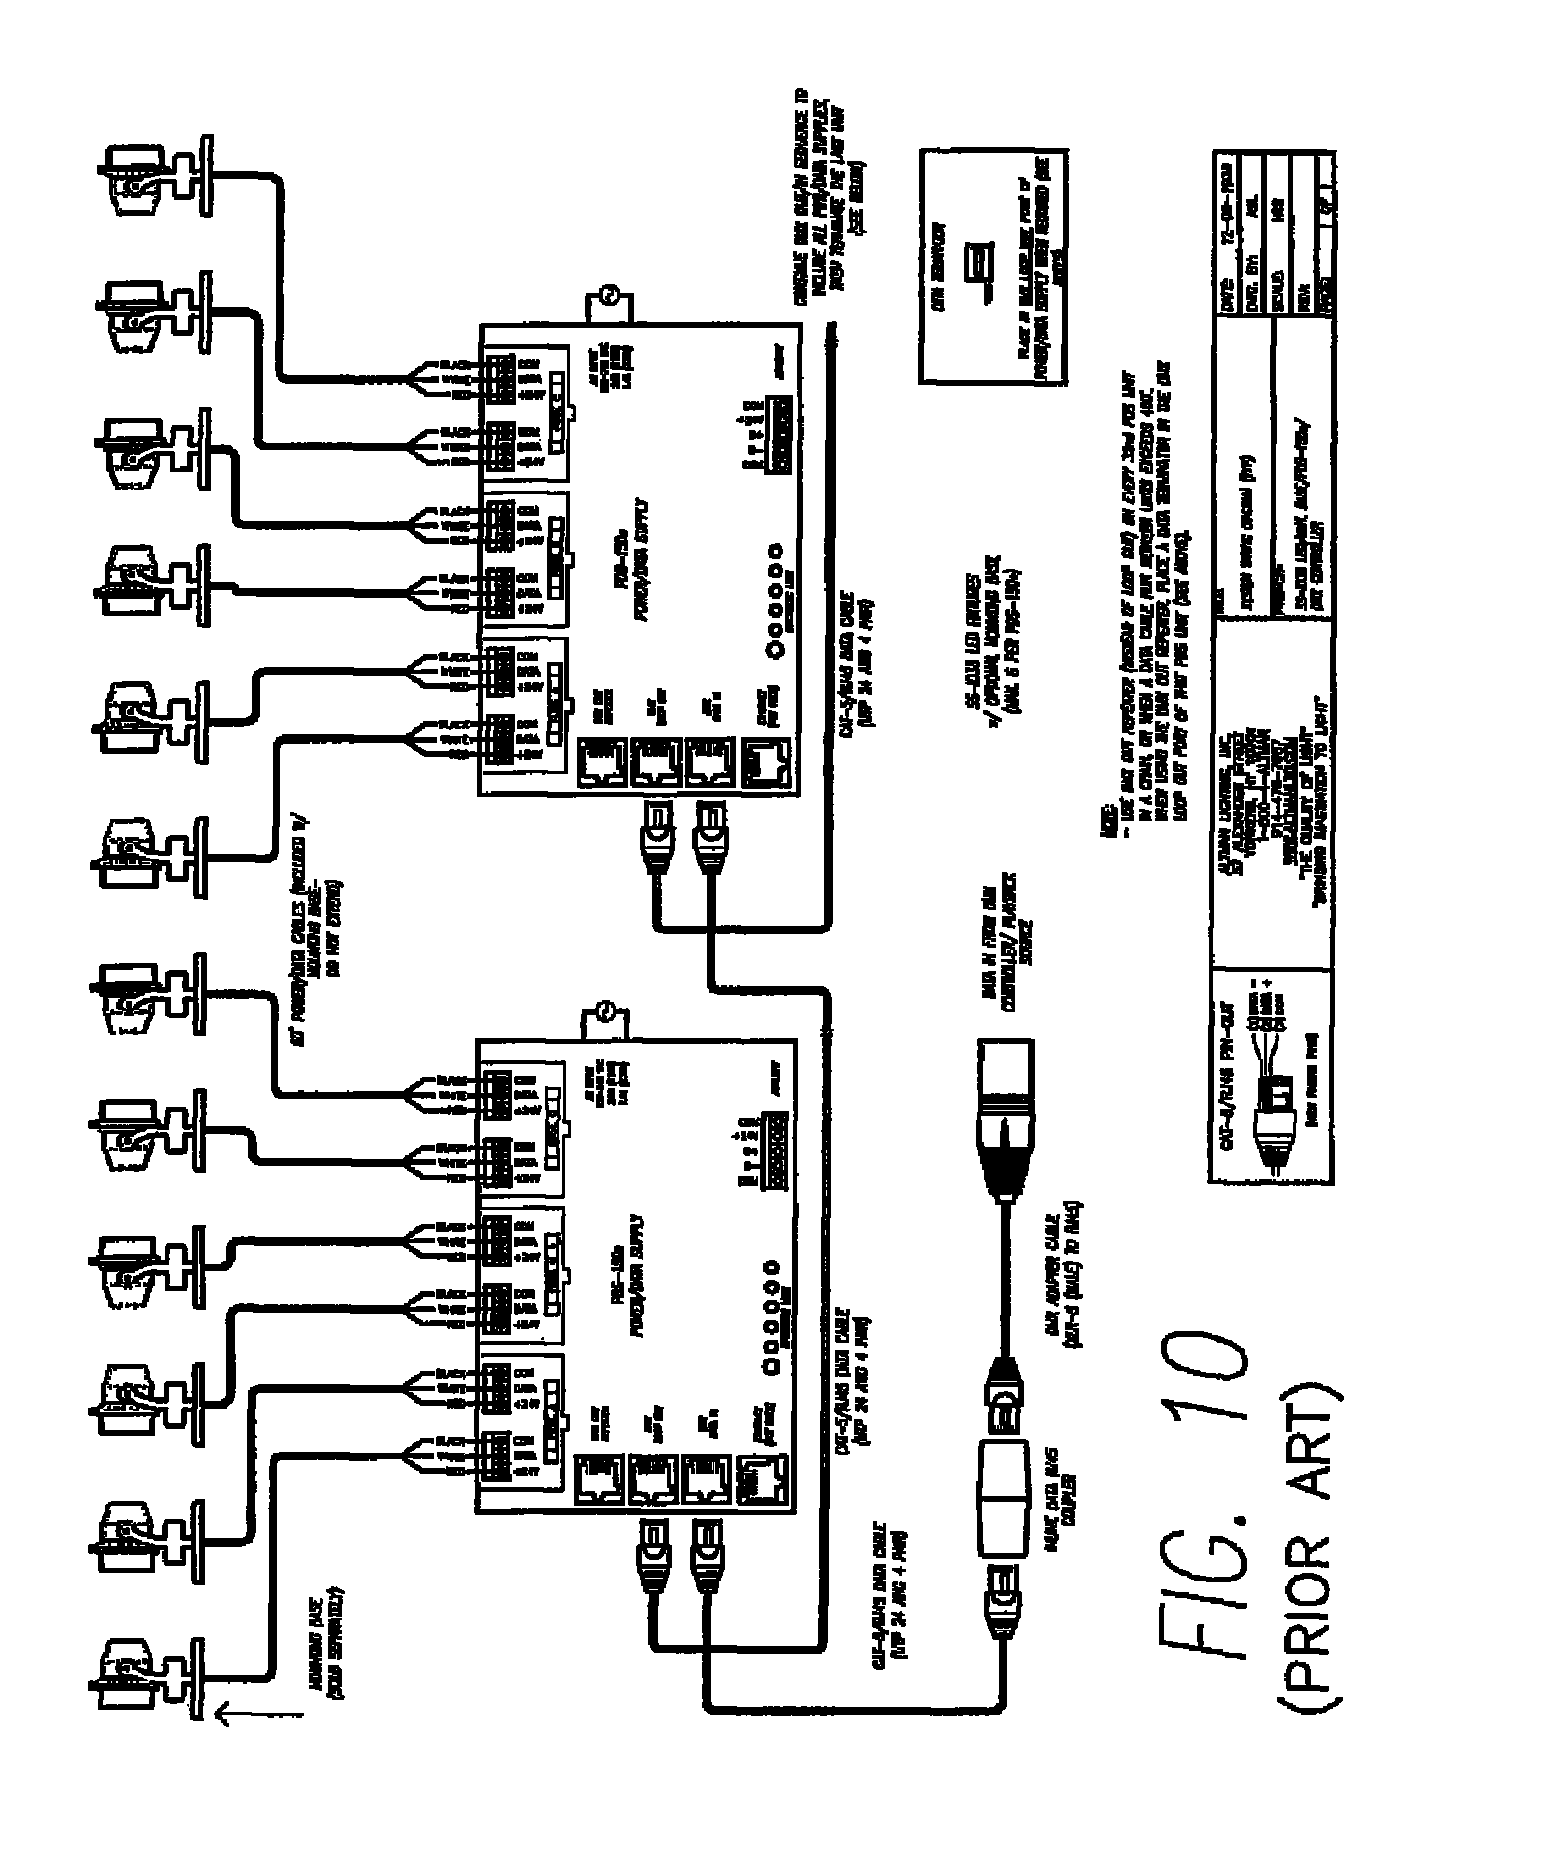 Field Controls Ck61 Wiring Diagram 34 Images Track Lighting Us08344655 20130101 D00009 Patent Us8344655 Power And Data System Google